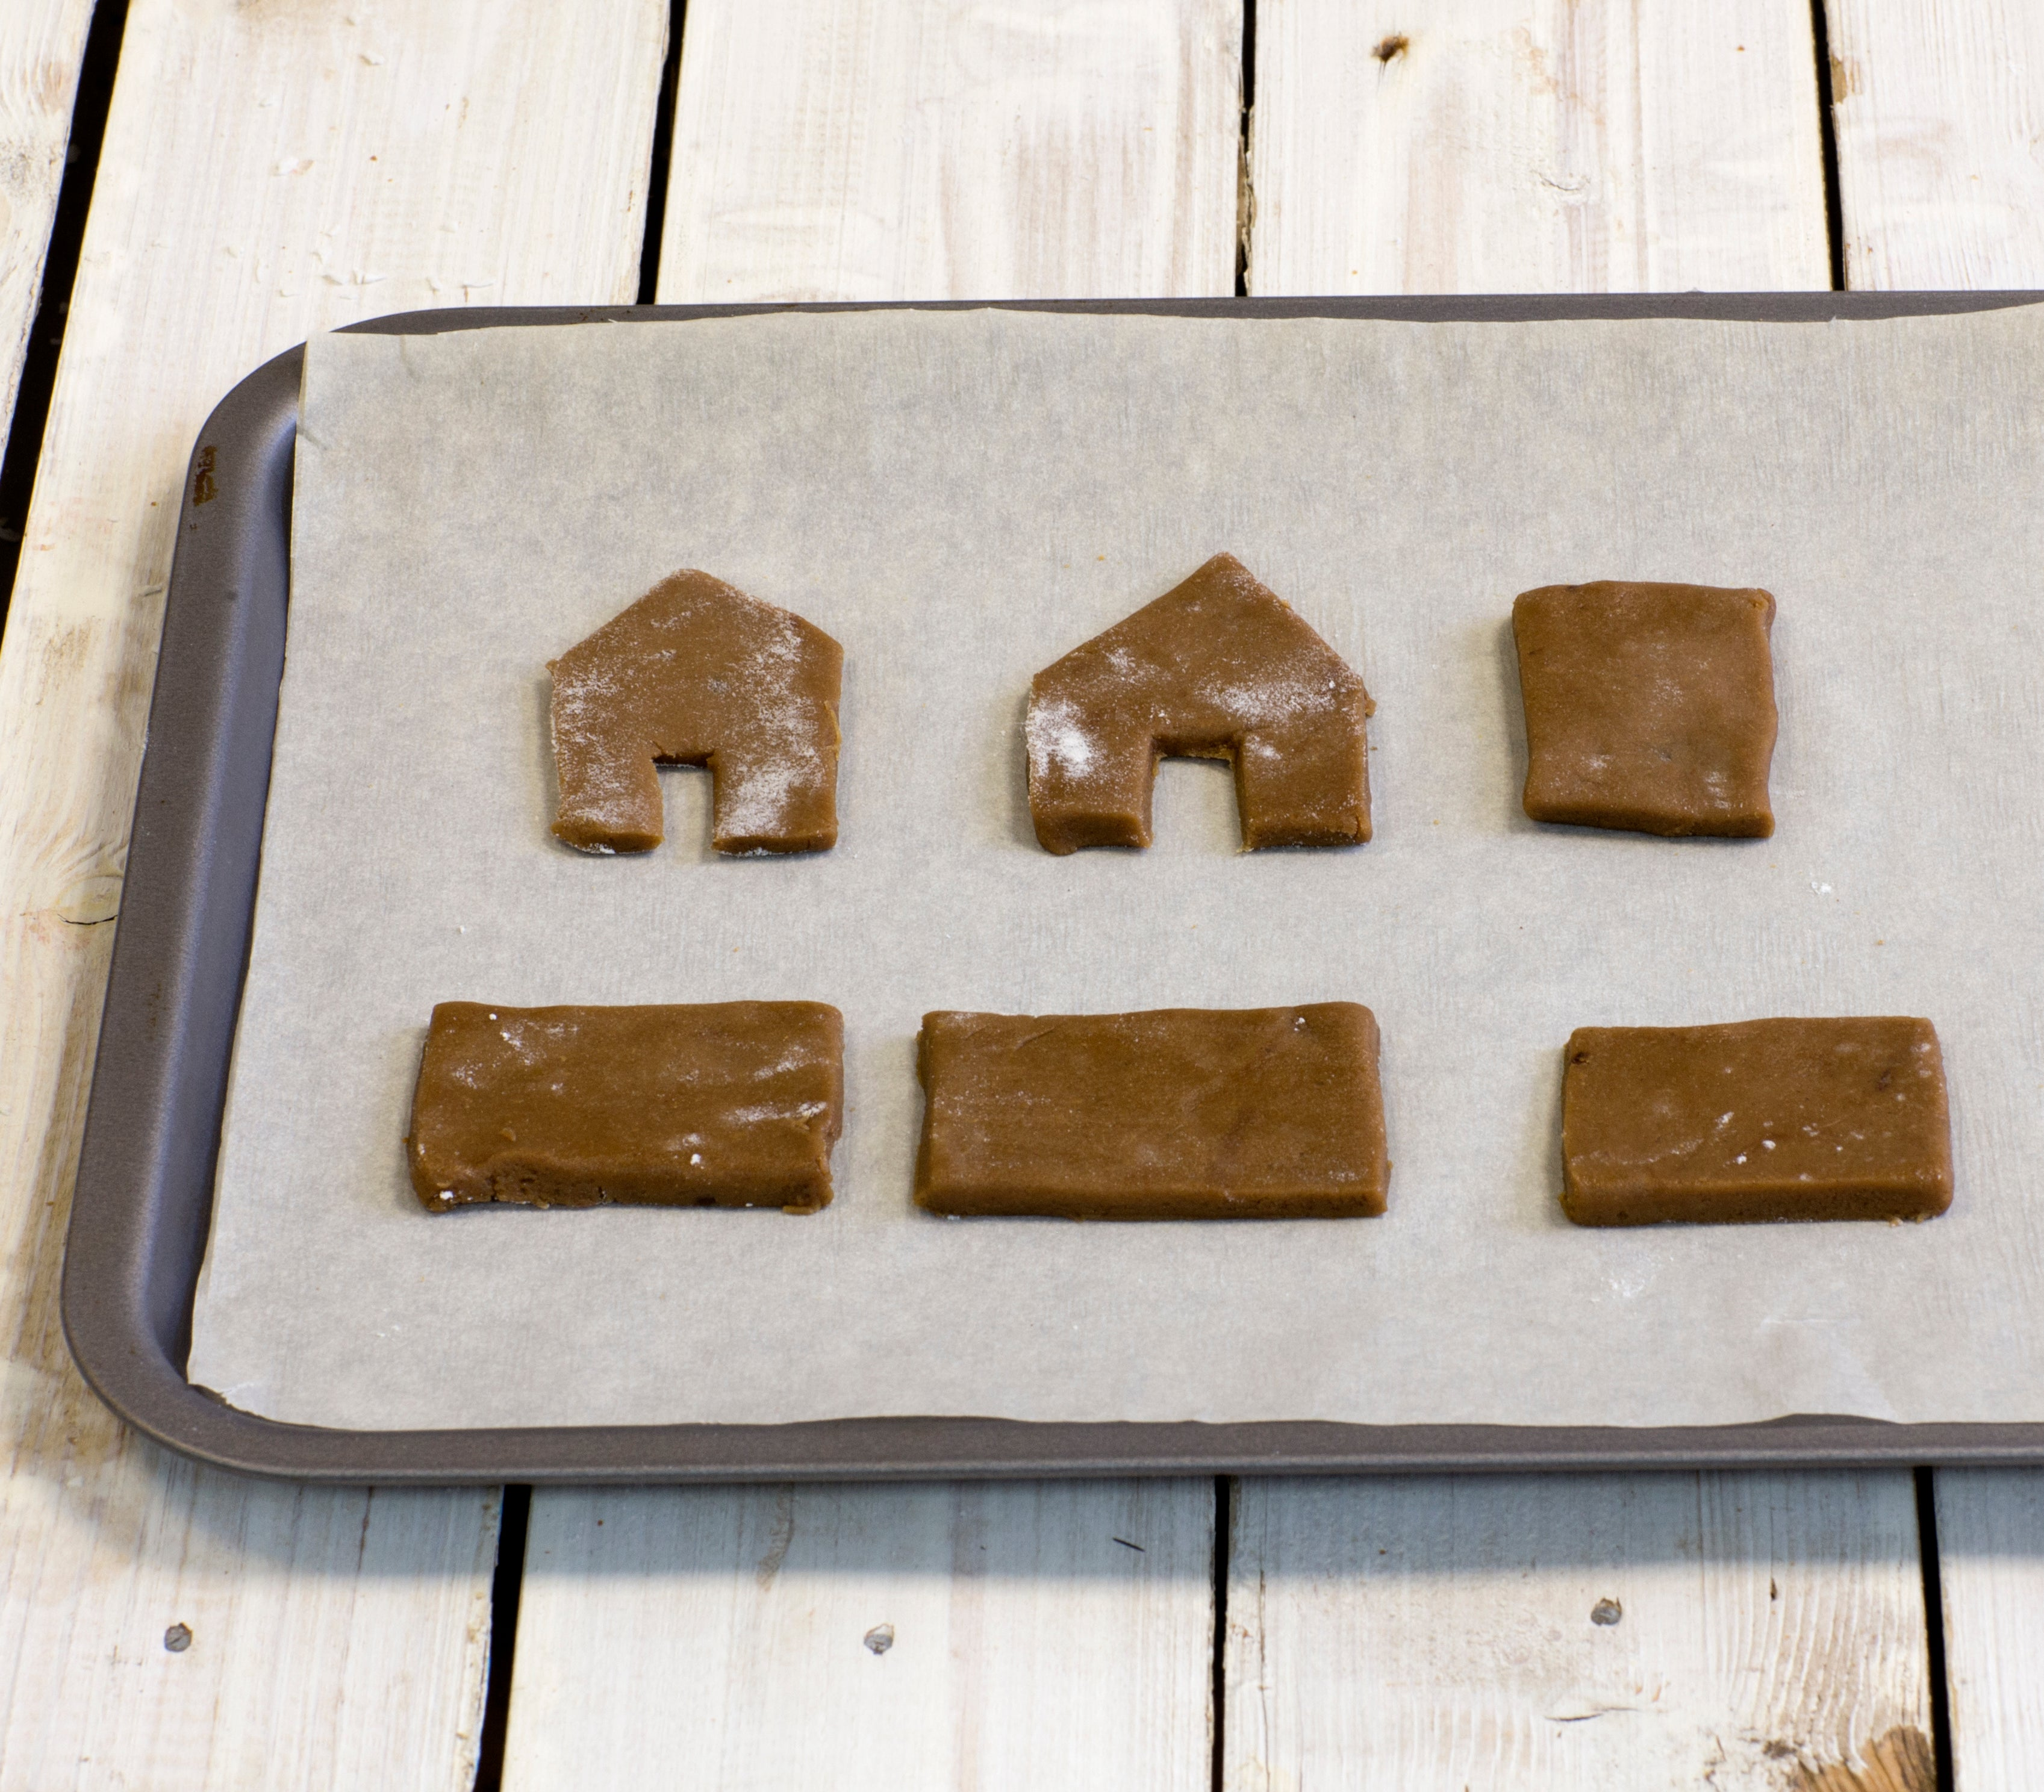 Gingerbread dough shapes laid out on baking tray